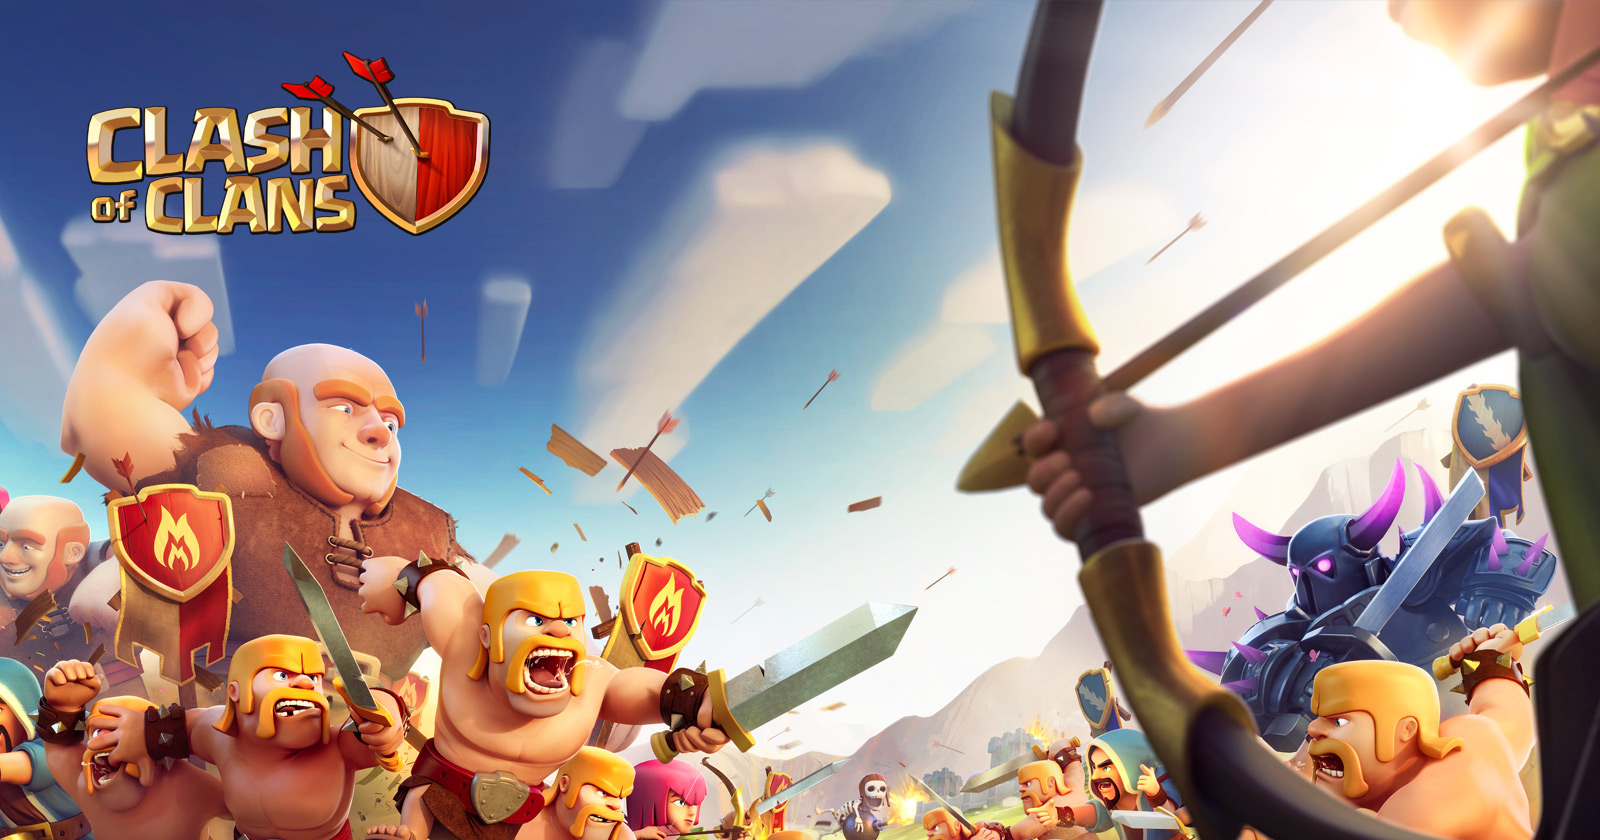 Download Clash of Clans 9.24.7 APK